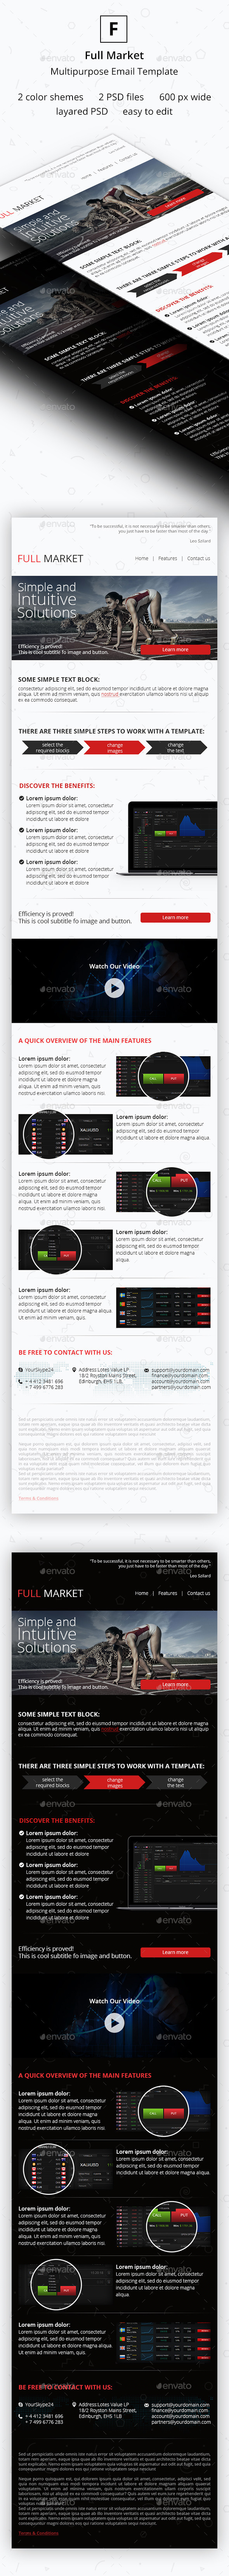 Full Market - Multipurpose Email Template - E-newsletters Web Elements